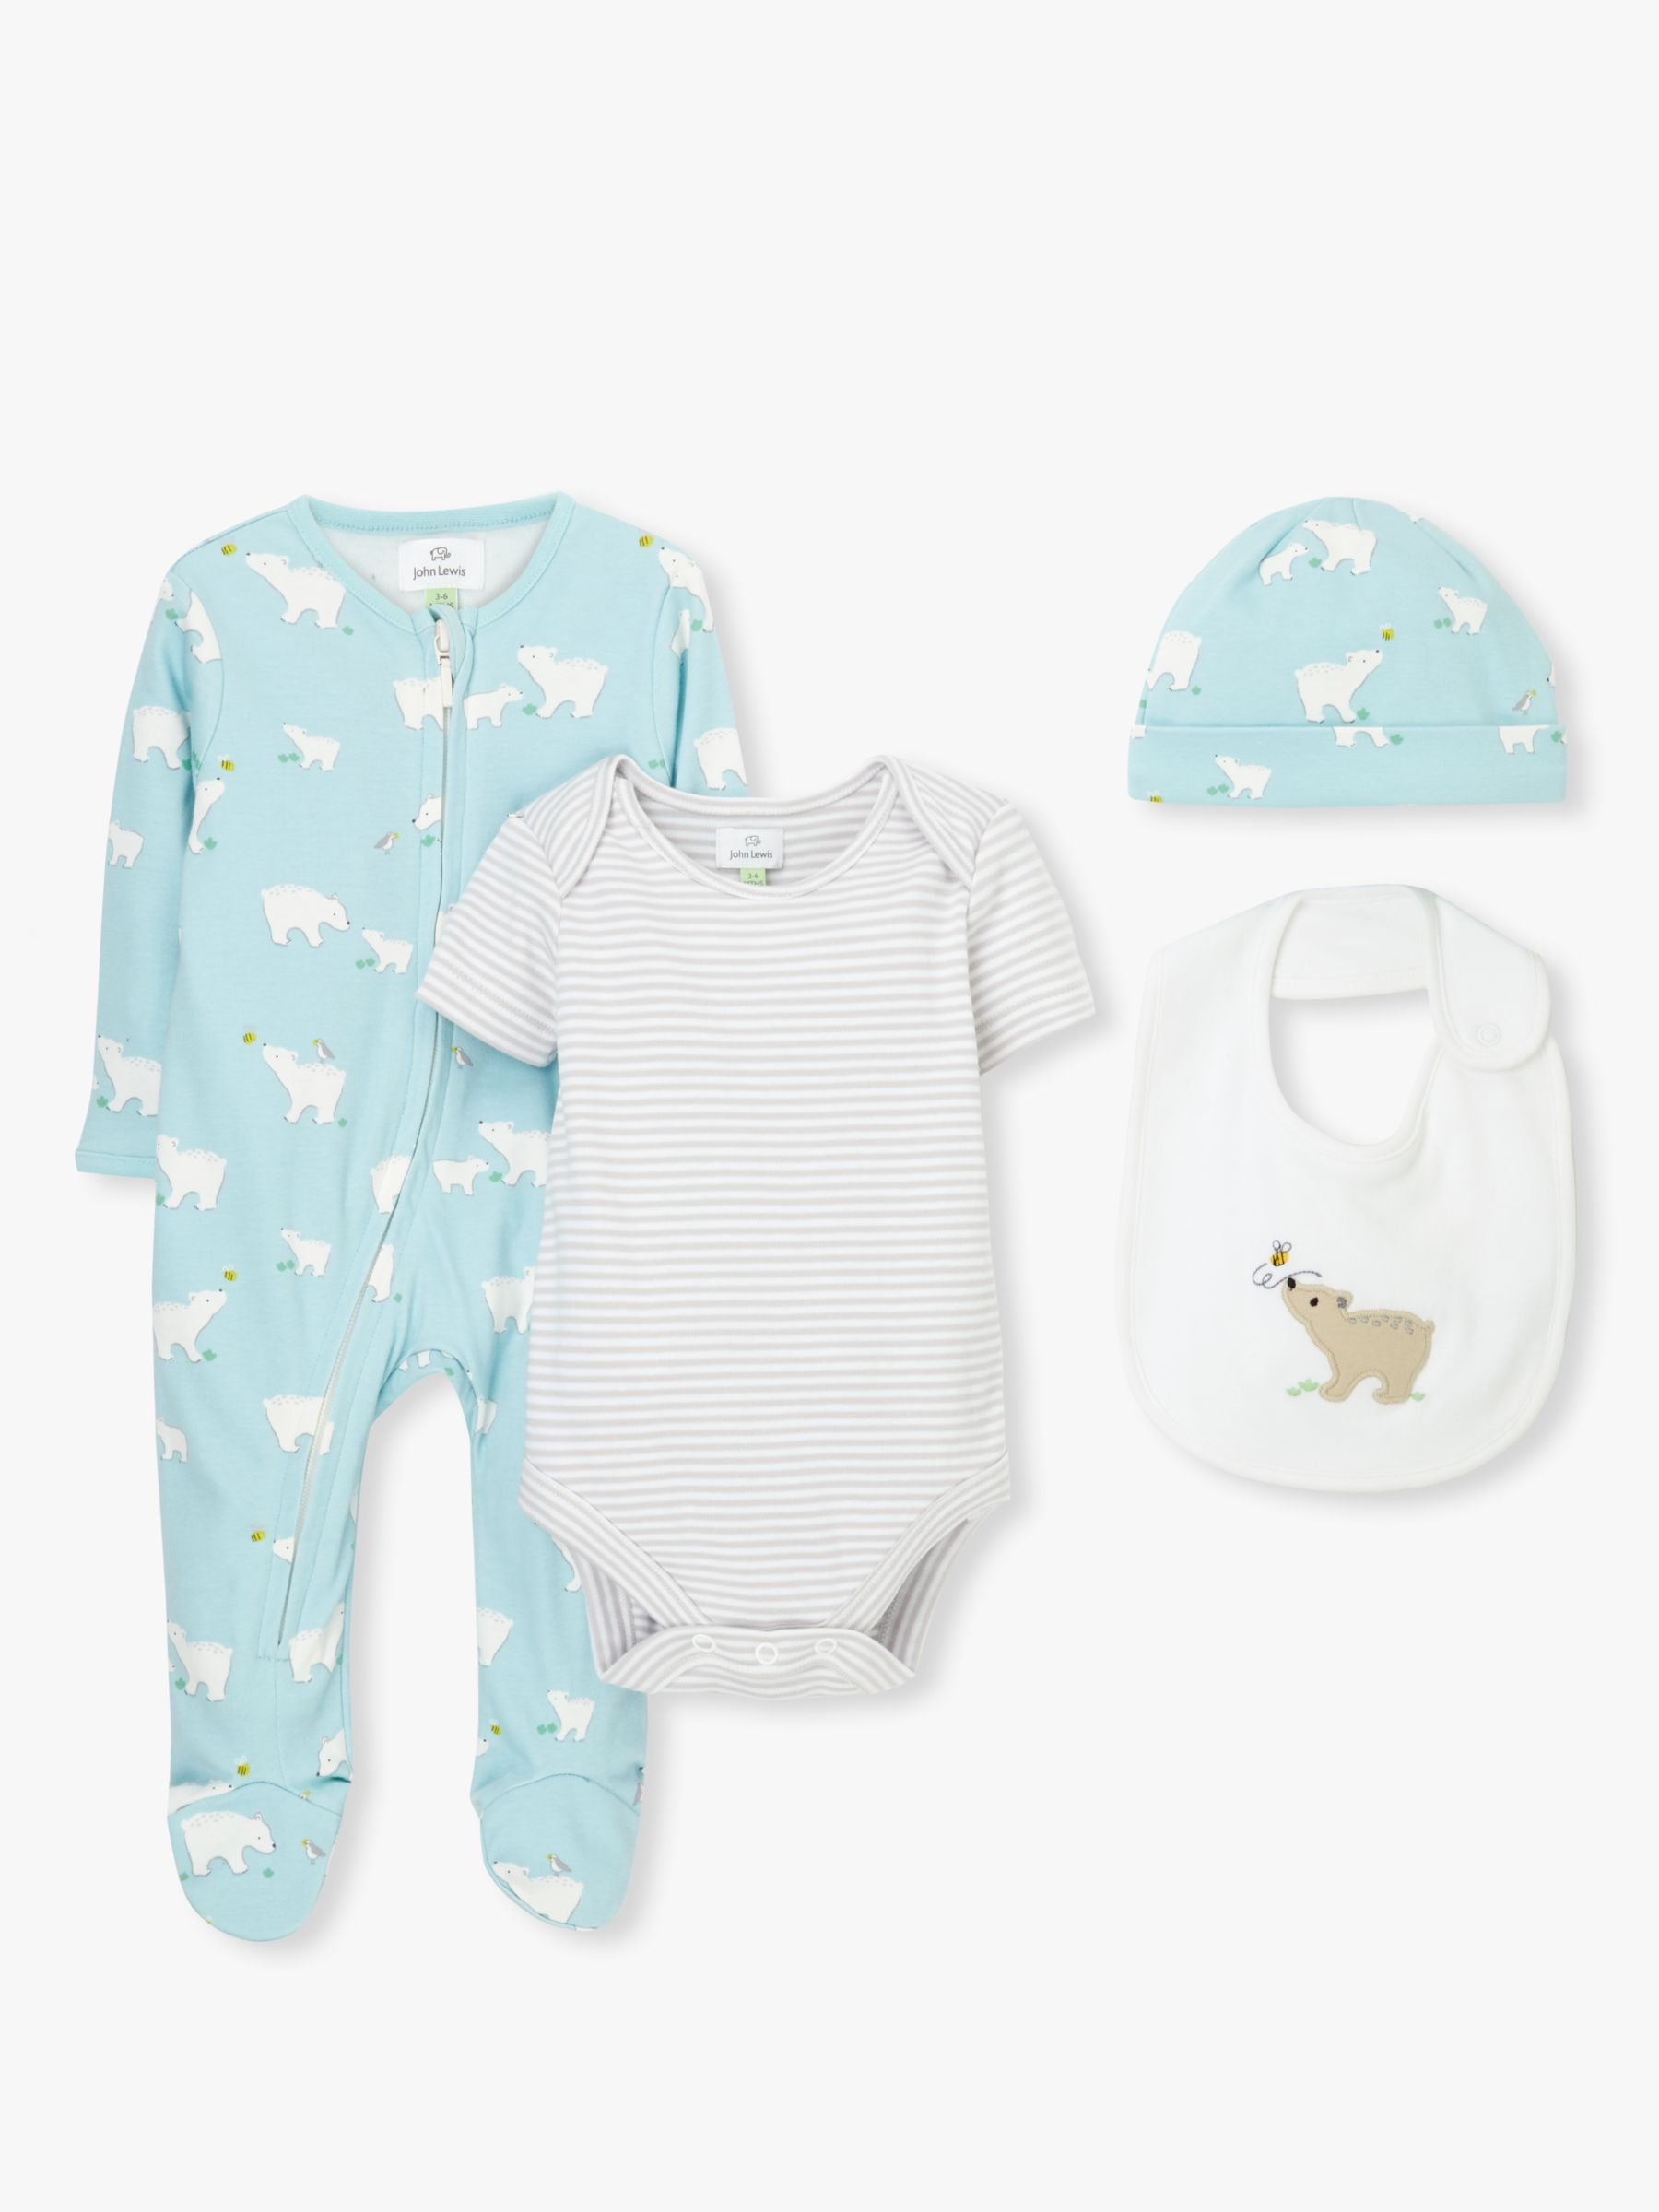 Baby Boys Car Themed Sleepsuit and Hat Set